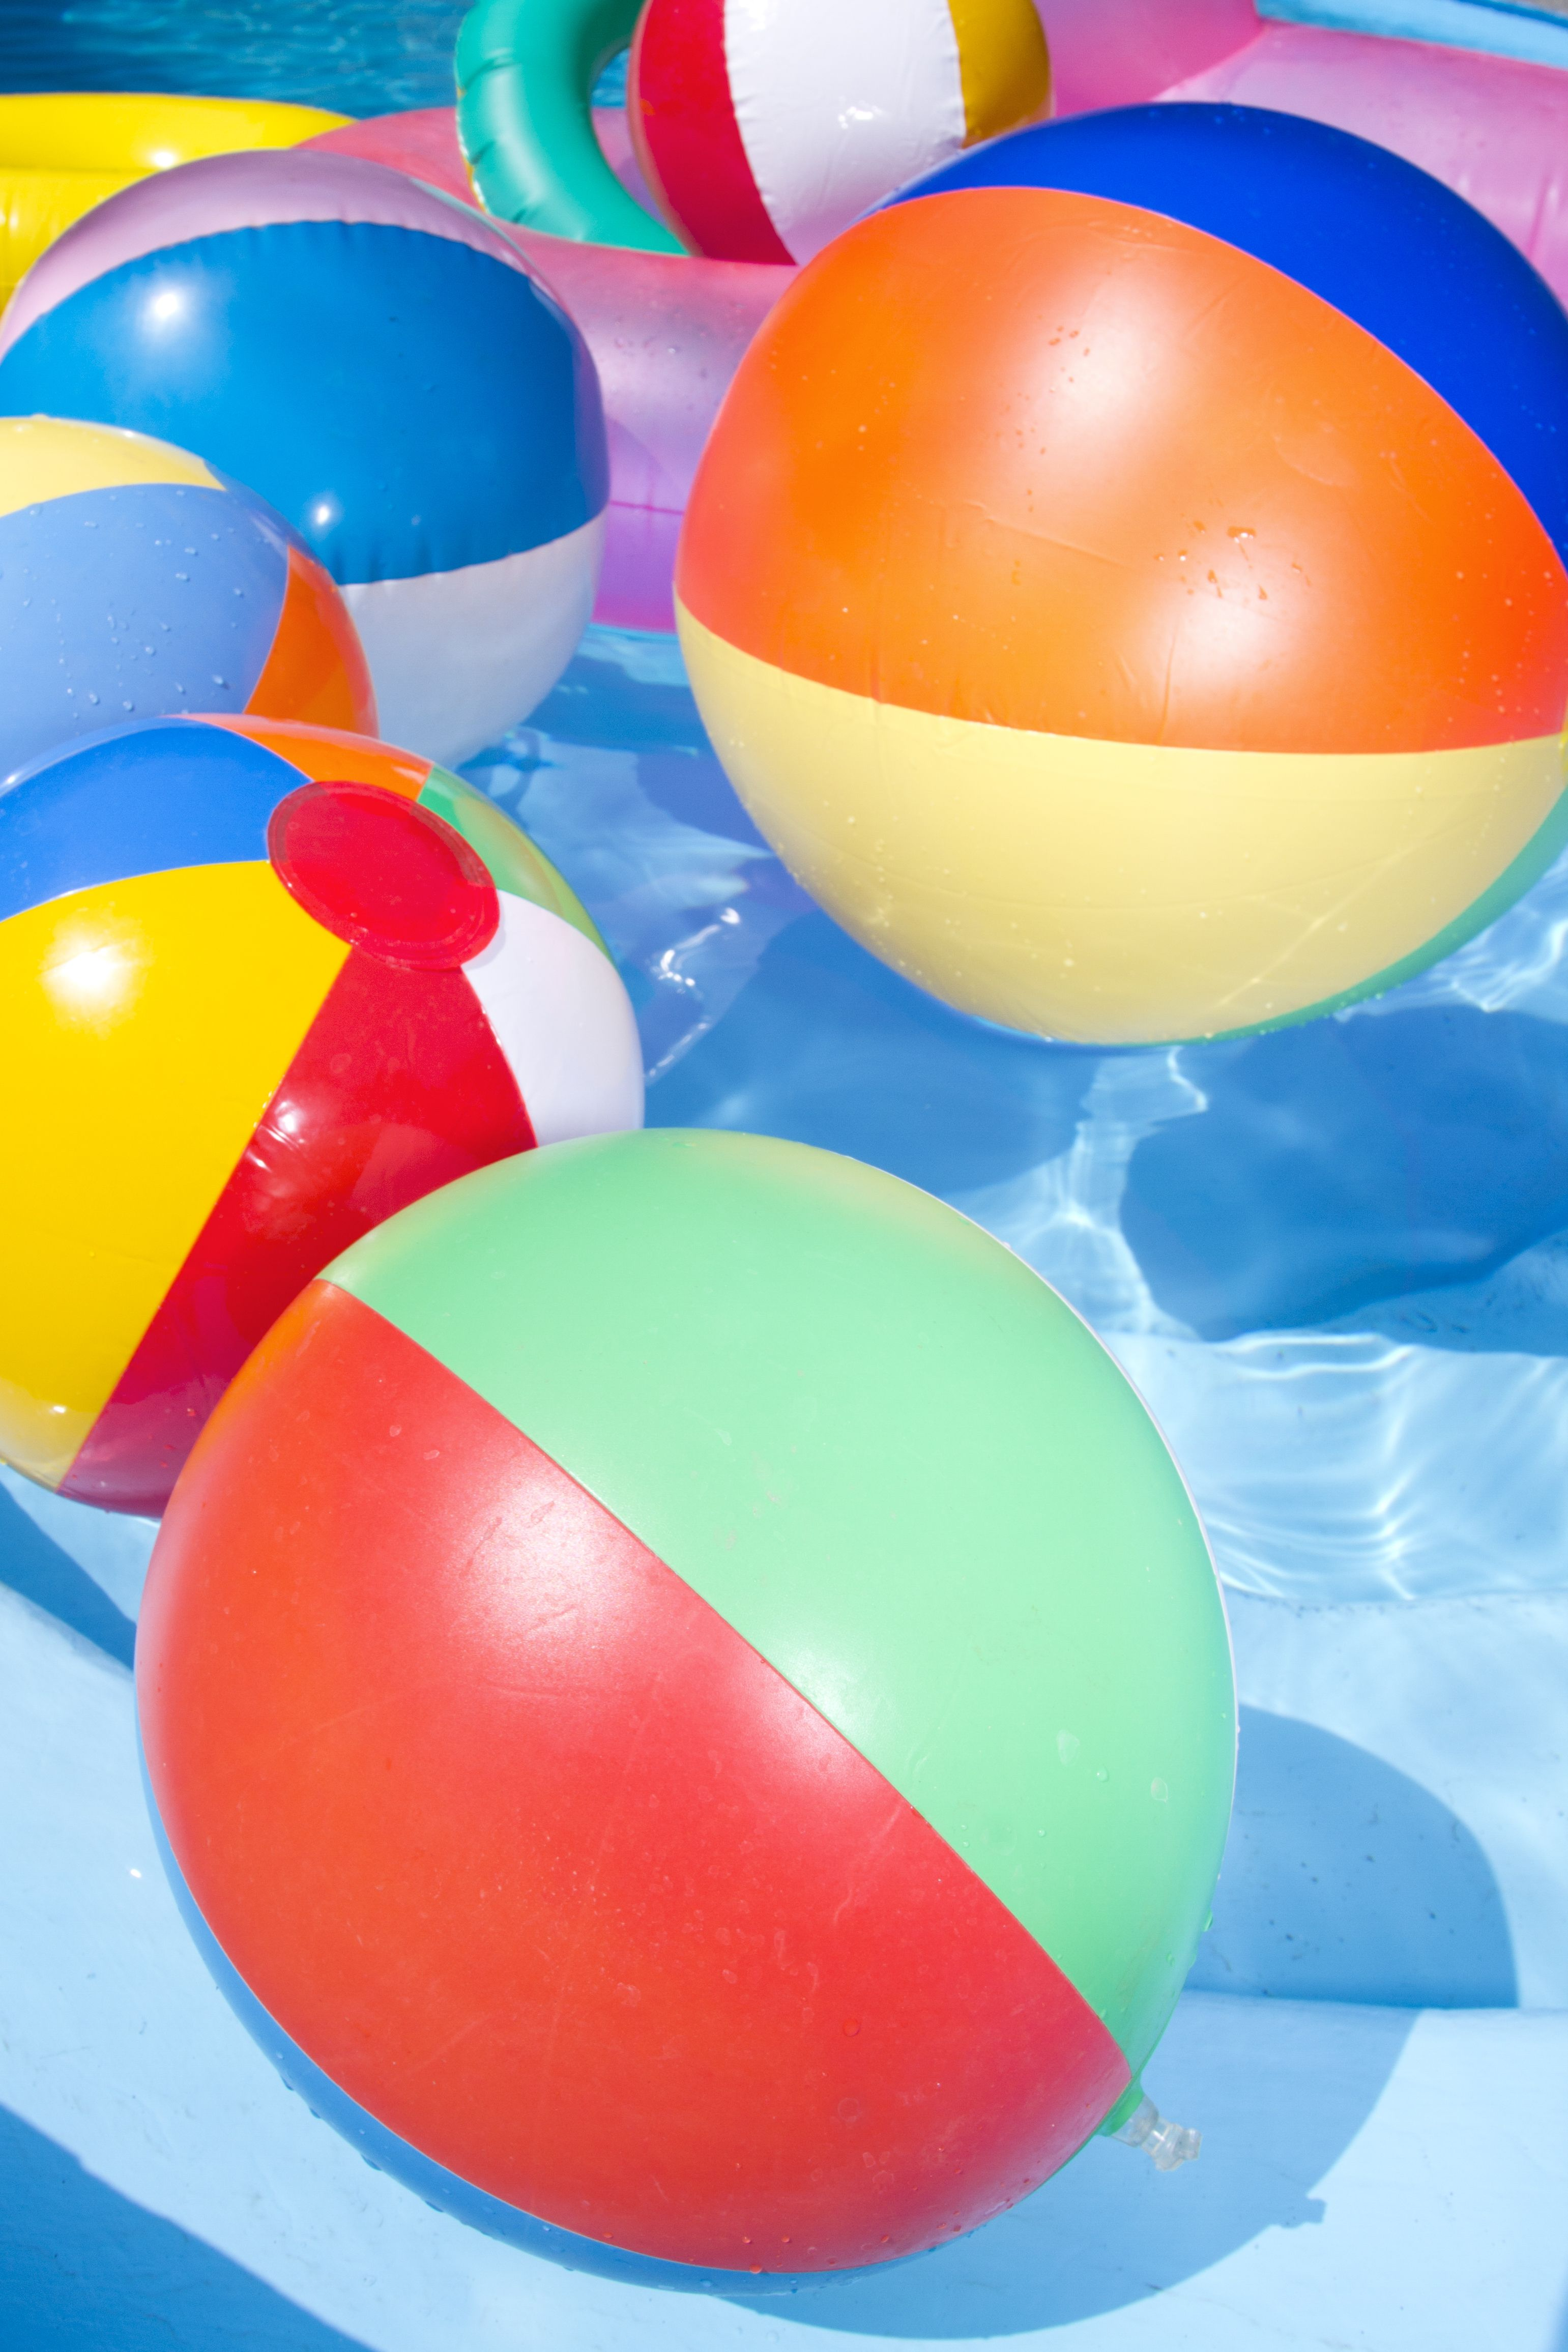 8 Things To Do With His Balls Beach Ball Color Harmony Summer Kids